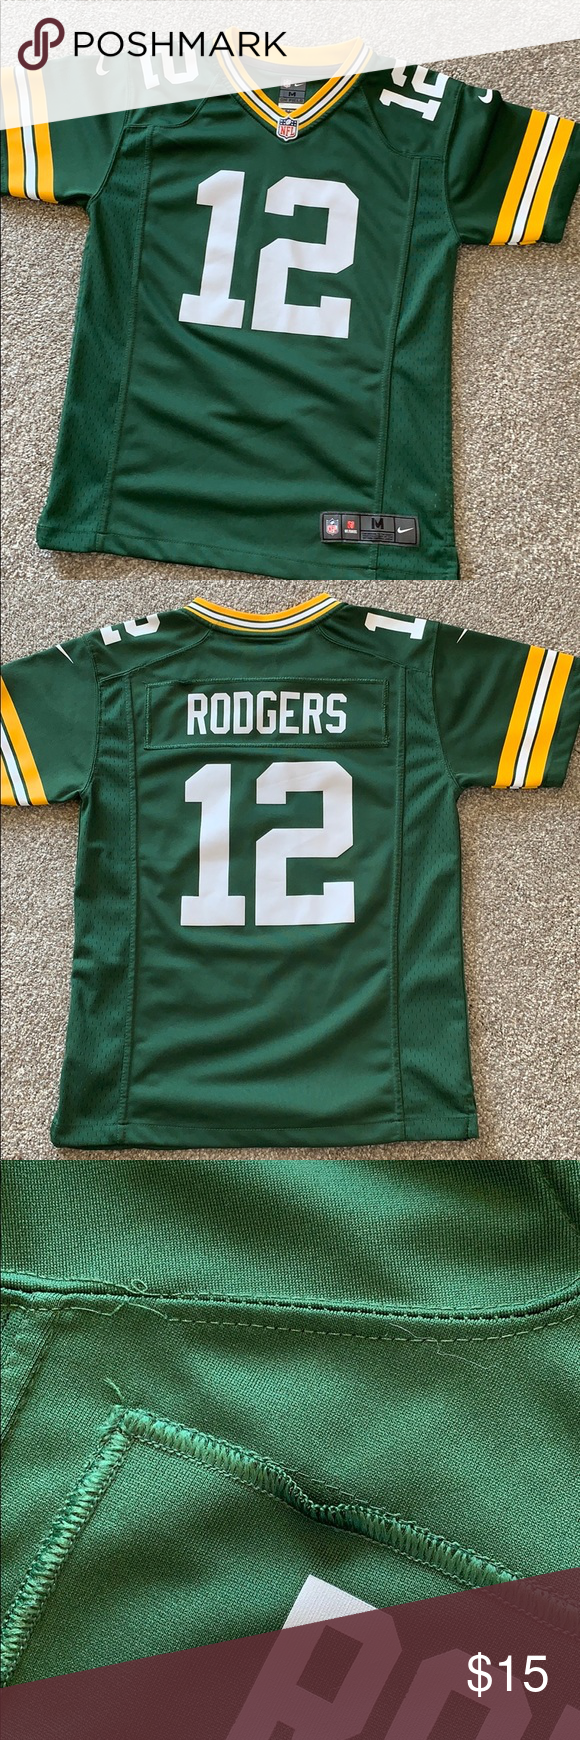 Aaron Rodgers Jersey Excellent Condition With The Exception Of A Few Threads Coming Loose In The Back Nike Nfl Shirts Tops Aaron Rodgers Jersey Nfl Shirts